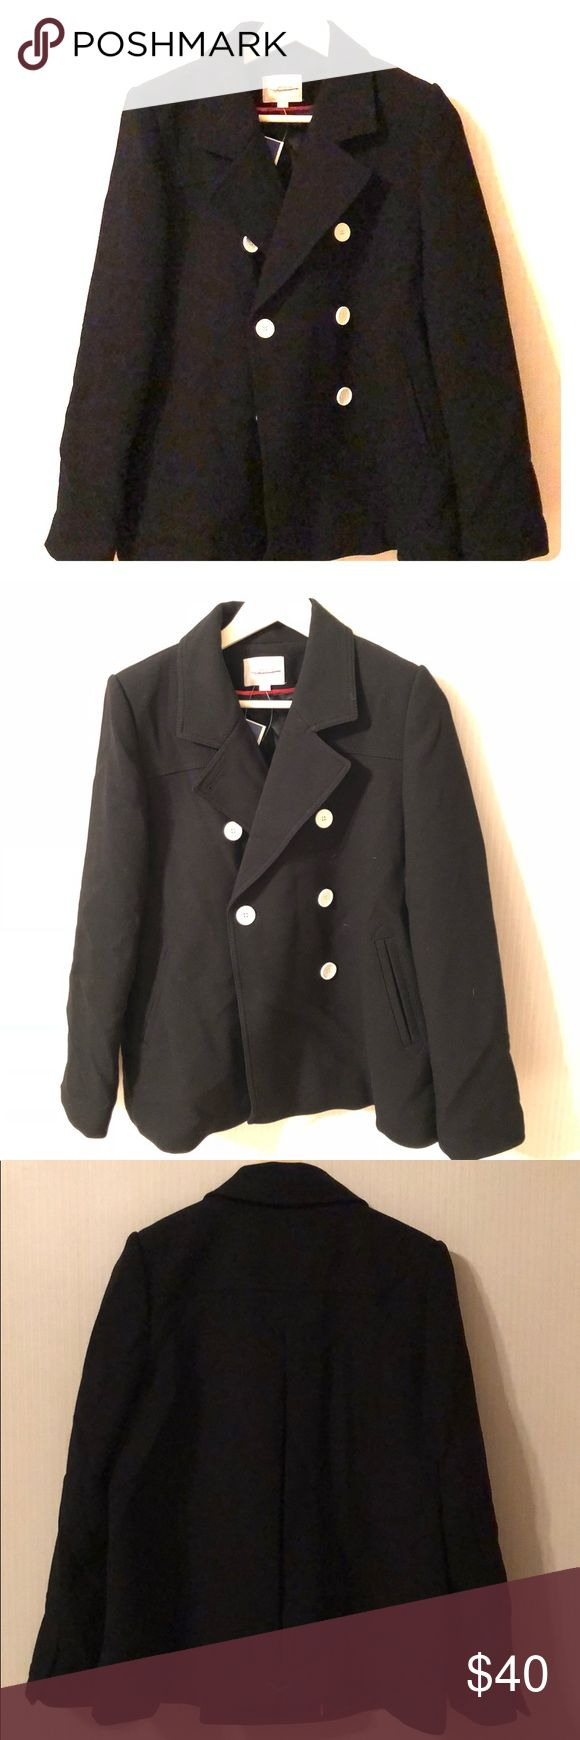 Ann Taylor Loft Black Pea Coat size Medium Adorable Anne Taylor Loft Black Peacoat! Size Medium. Hidden buttons on adjustable sleeves shown in last pic.  Comes with two extra buttons. Make an offer! LOFT Jackets & Coats Pea Coats